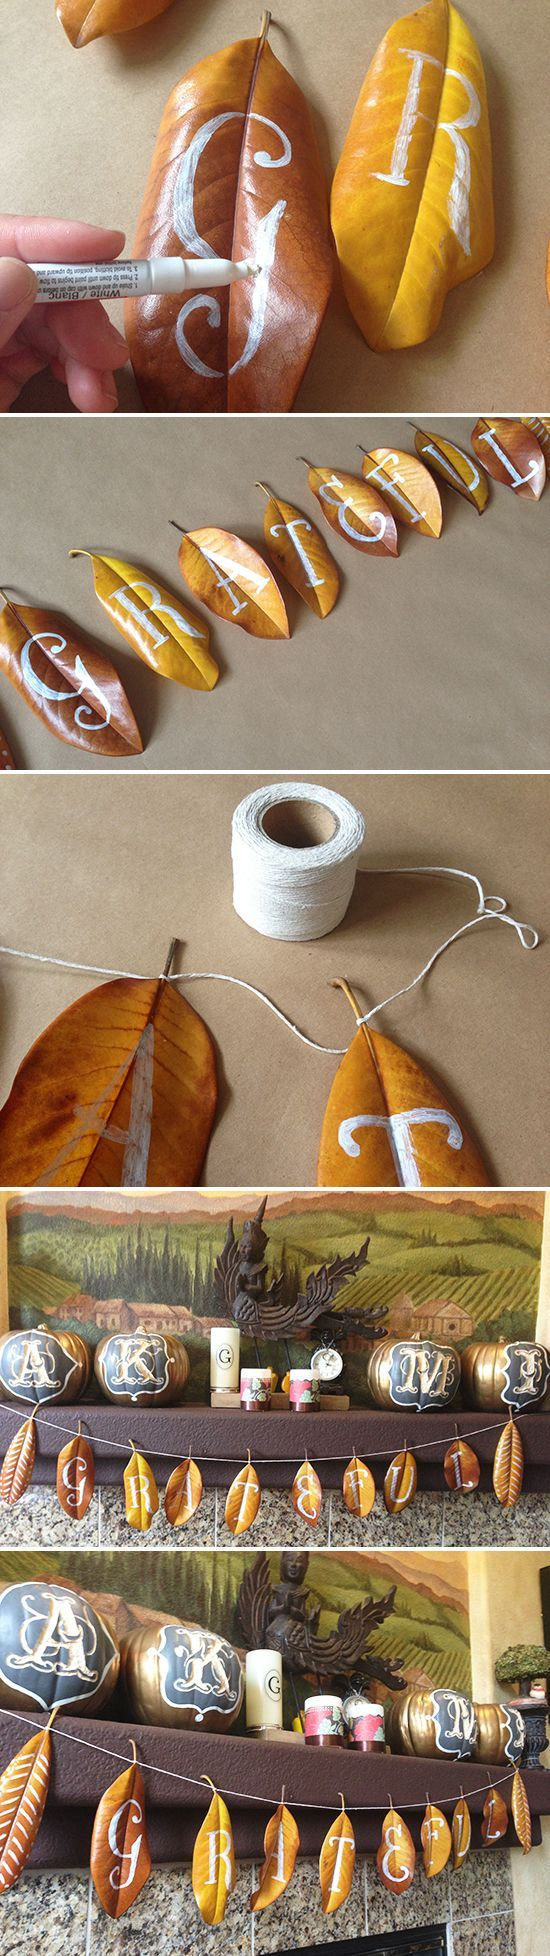 Here's a great activity that you can to make your place more festive for this Thanksgiving.